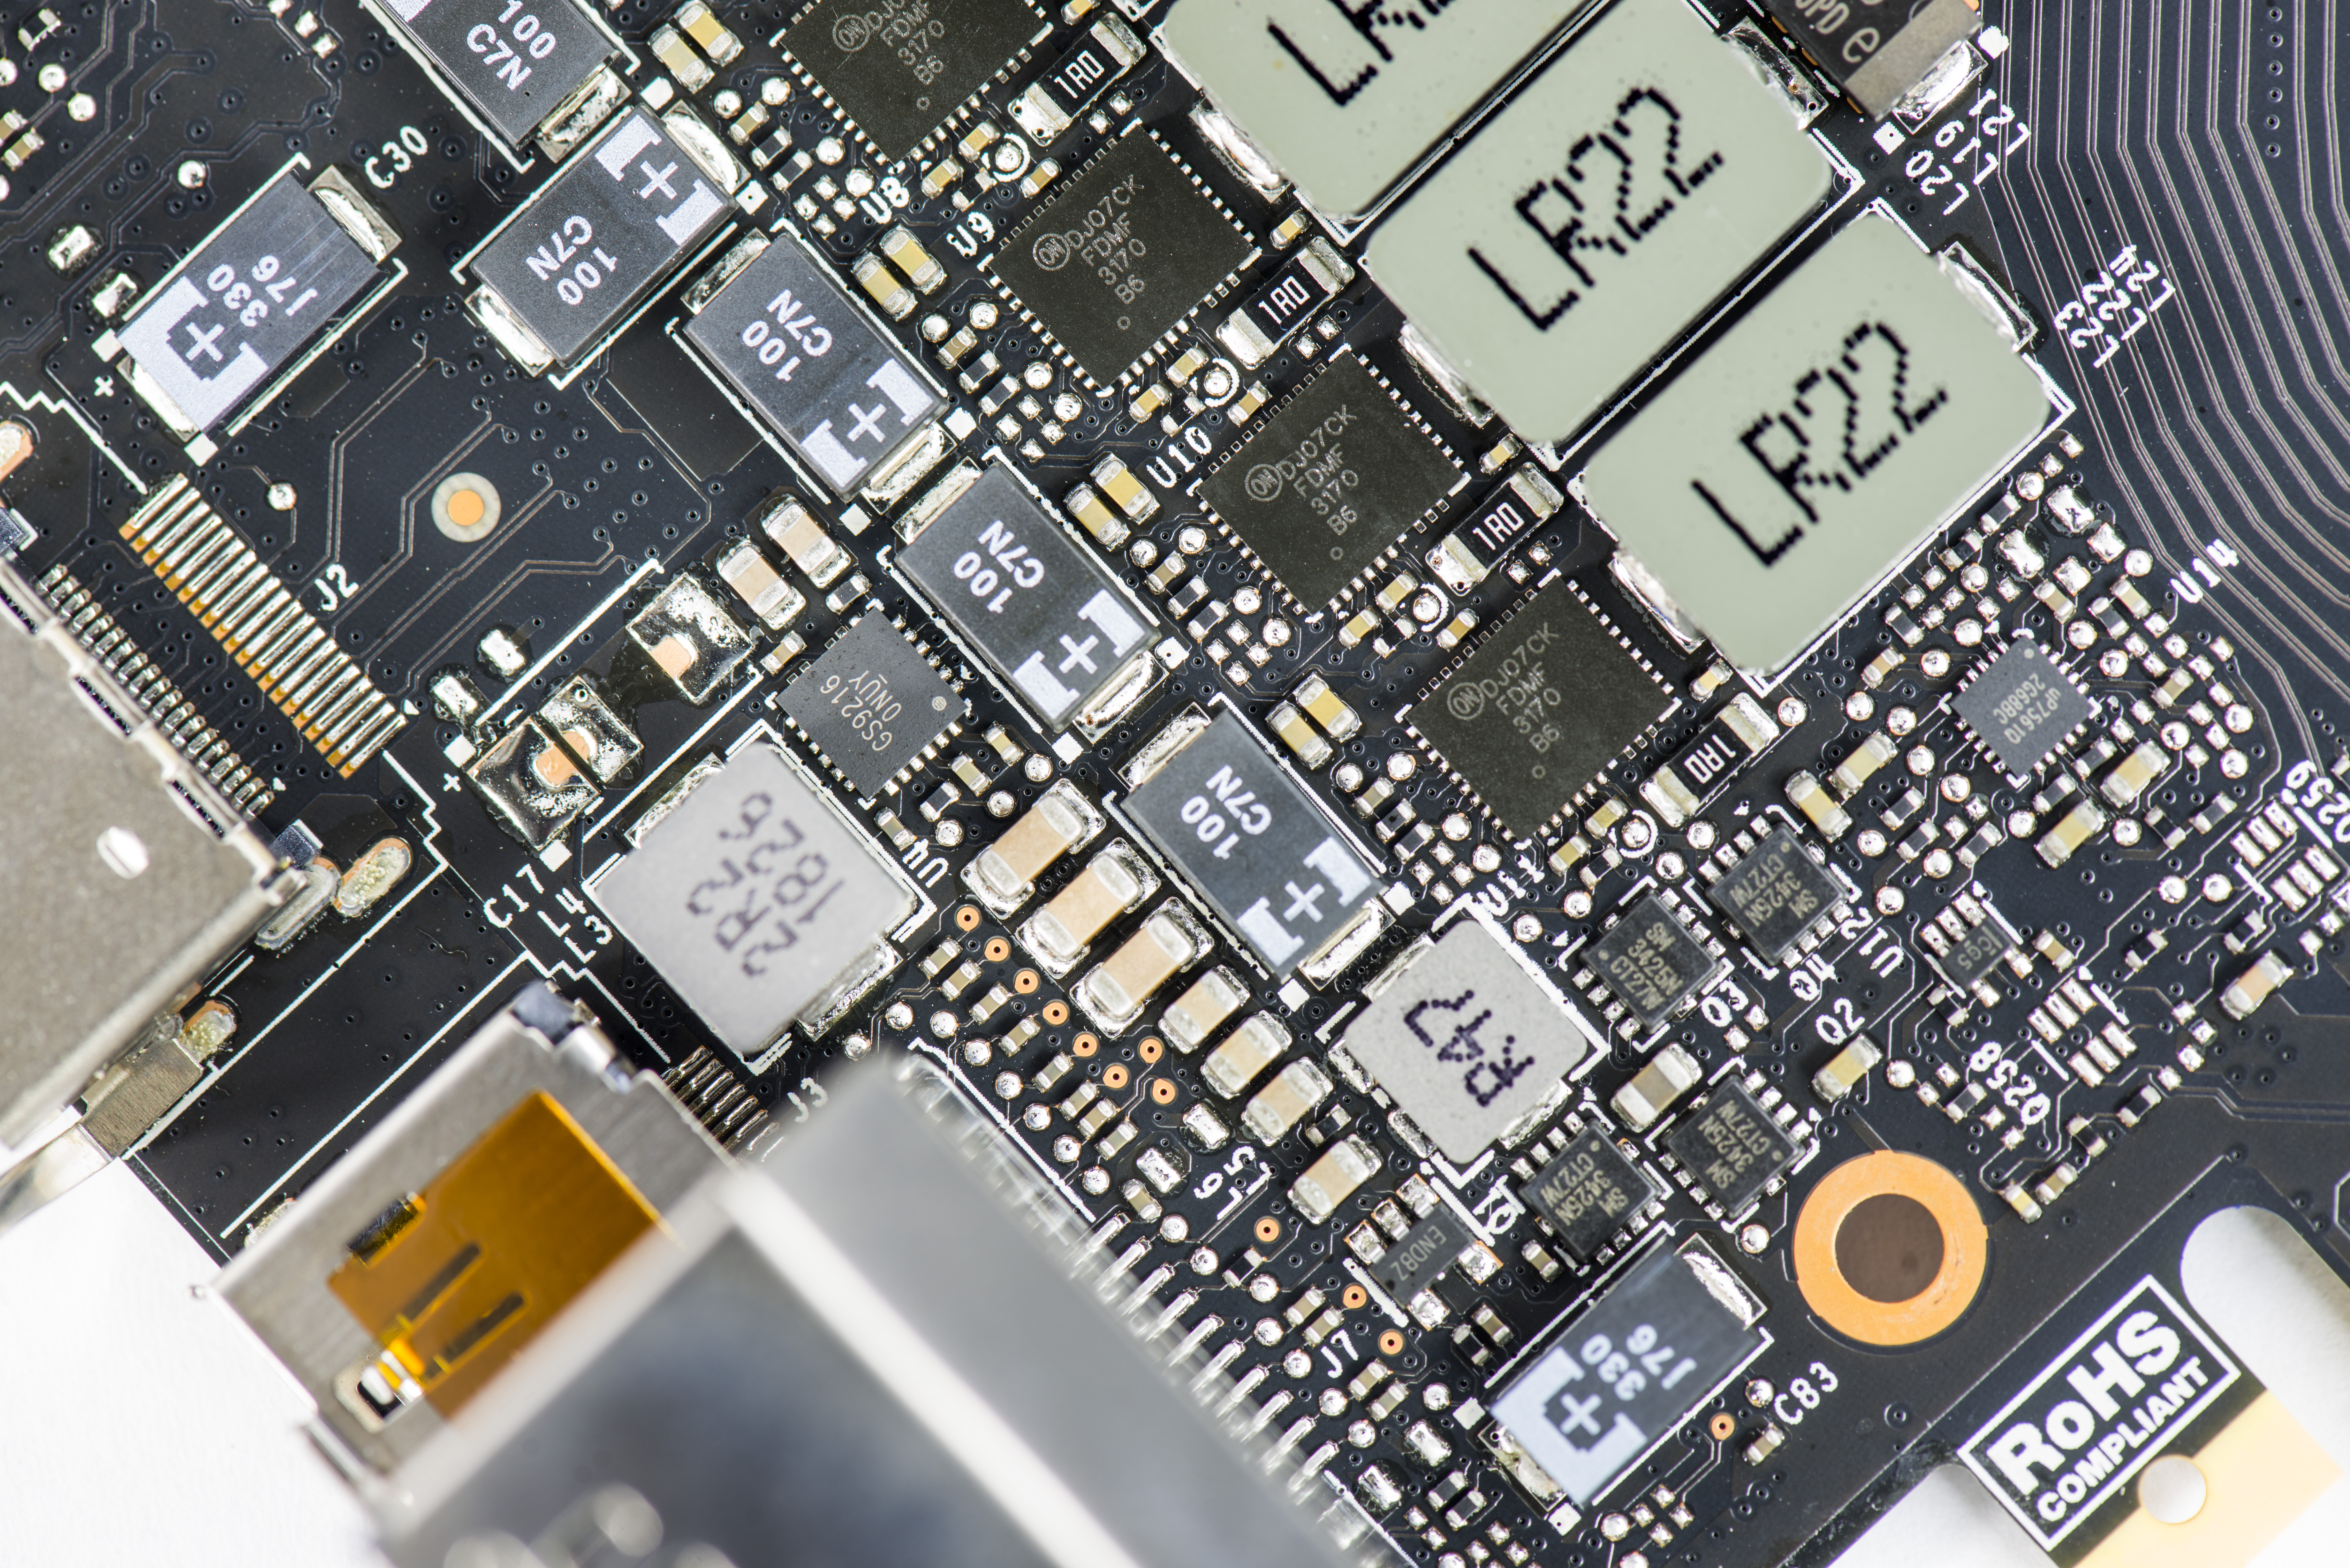 Teardown Of The Evga Geforce Rtx 2080 Ti Xc Ultra Circuit Board To Hold Your Memories This Creative Photo Frame Is Image 15 16 Power Components Near Display I O And New Rgb Enabled Dual Fan Header